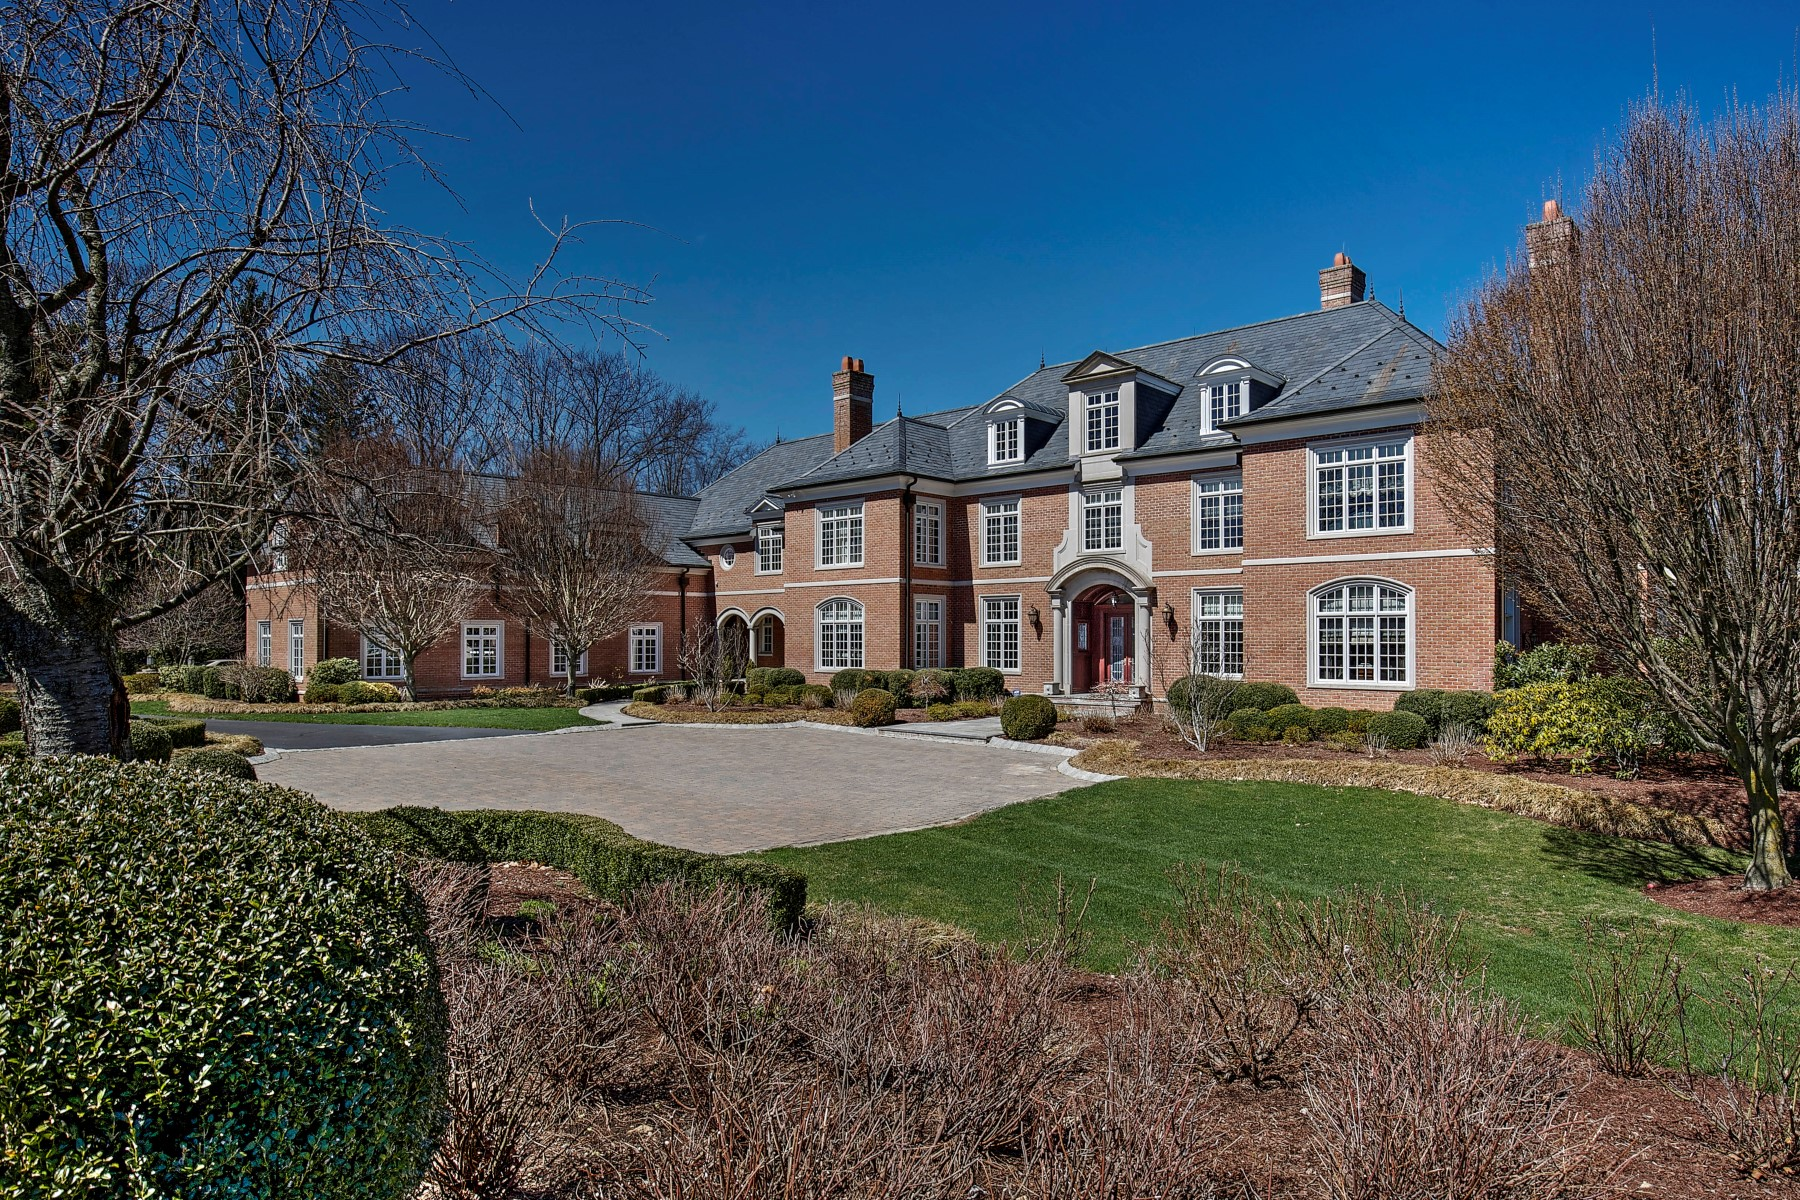 Single Family Home for Sale at Mountain Top Manor 141 Mountain Top Road Bernardsville, New Jersey, 07924 United States